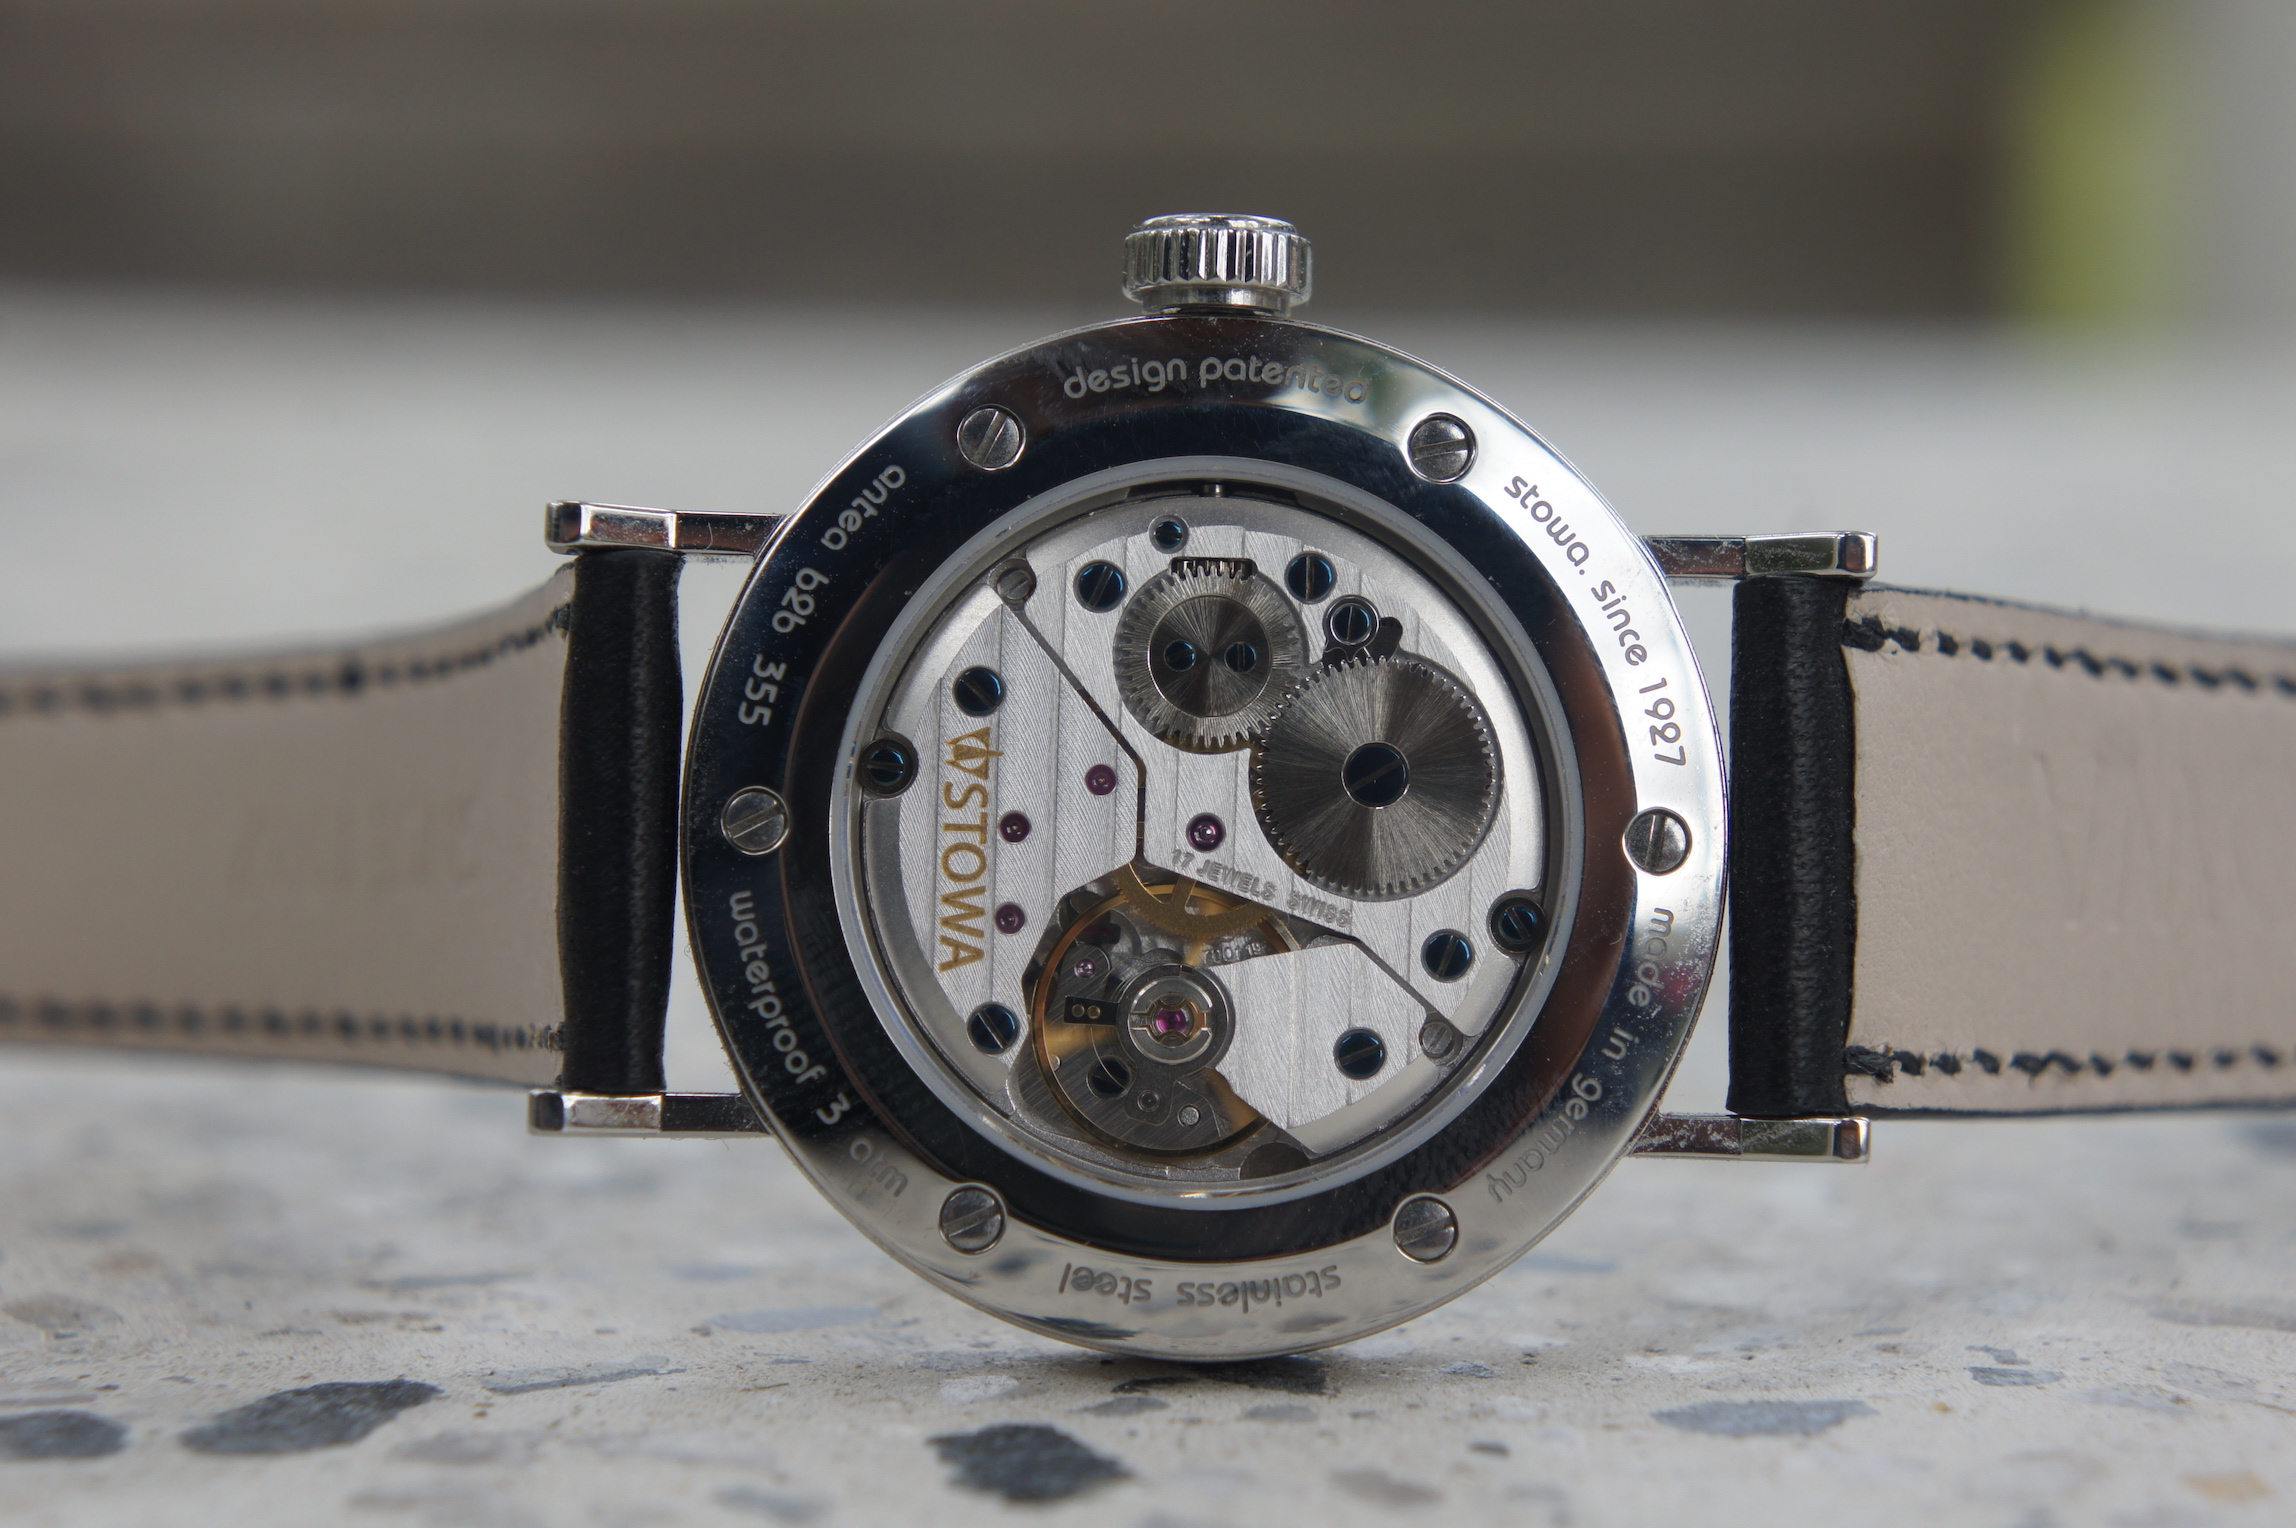 watch seatime schauer watches review prodiver seadiver stowa wound pro worn